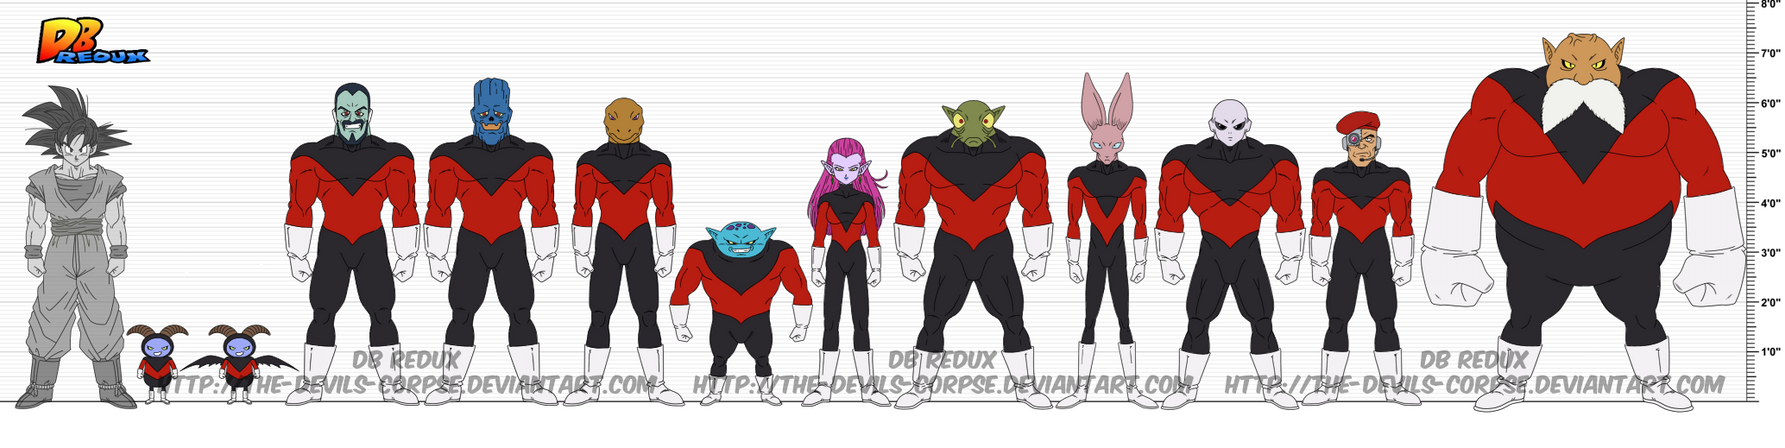 DBR Team Universe 11 (U11) by The-Devils-Corpse